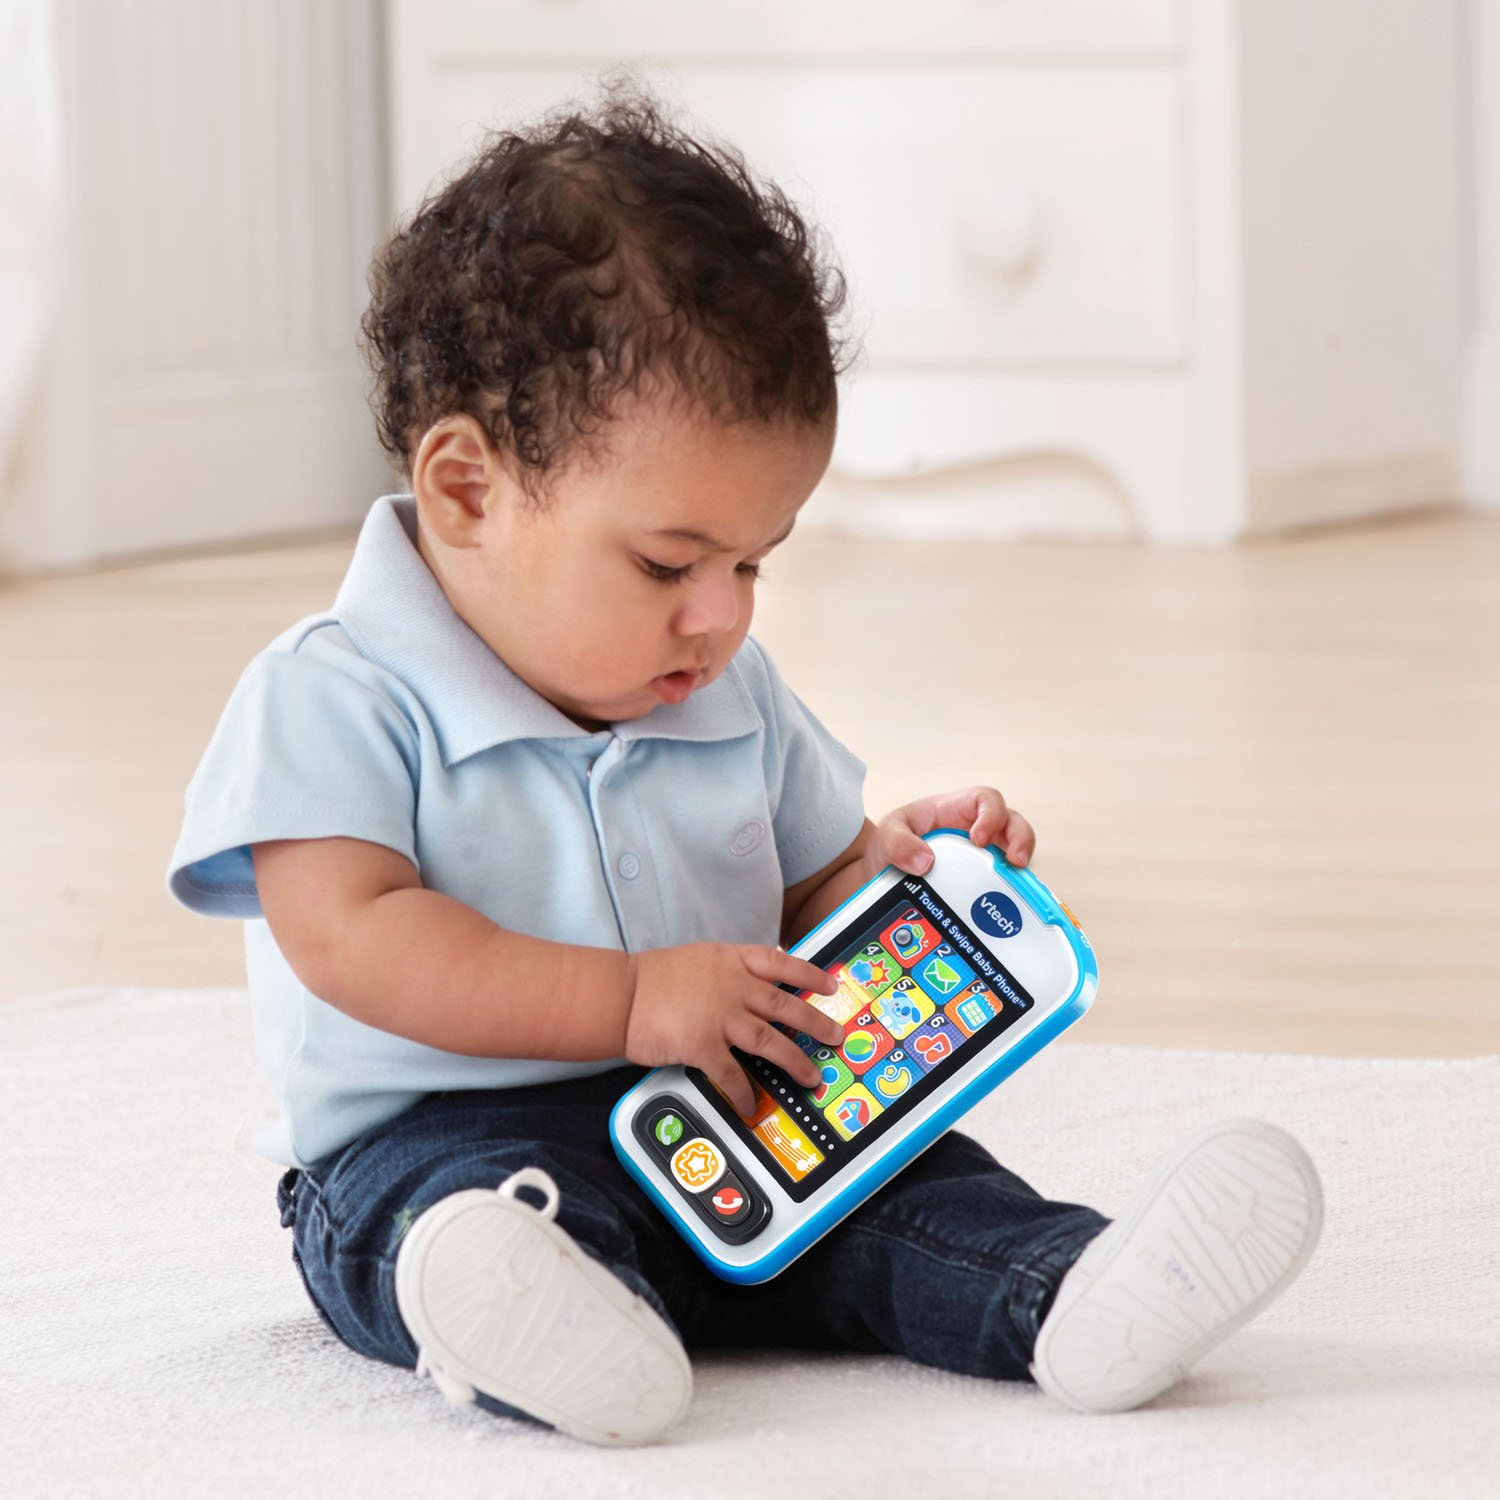 VTech Touch and Swipe Baby Phone, Blue by VTech (Image #4)